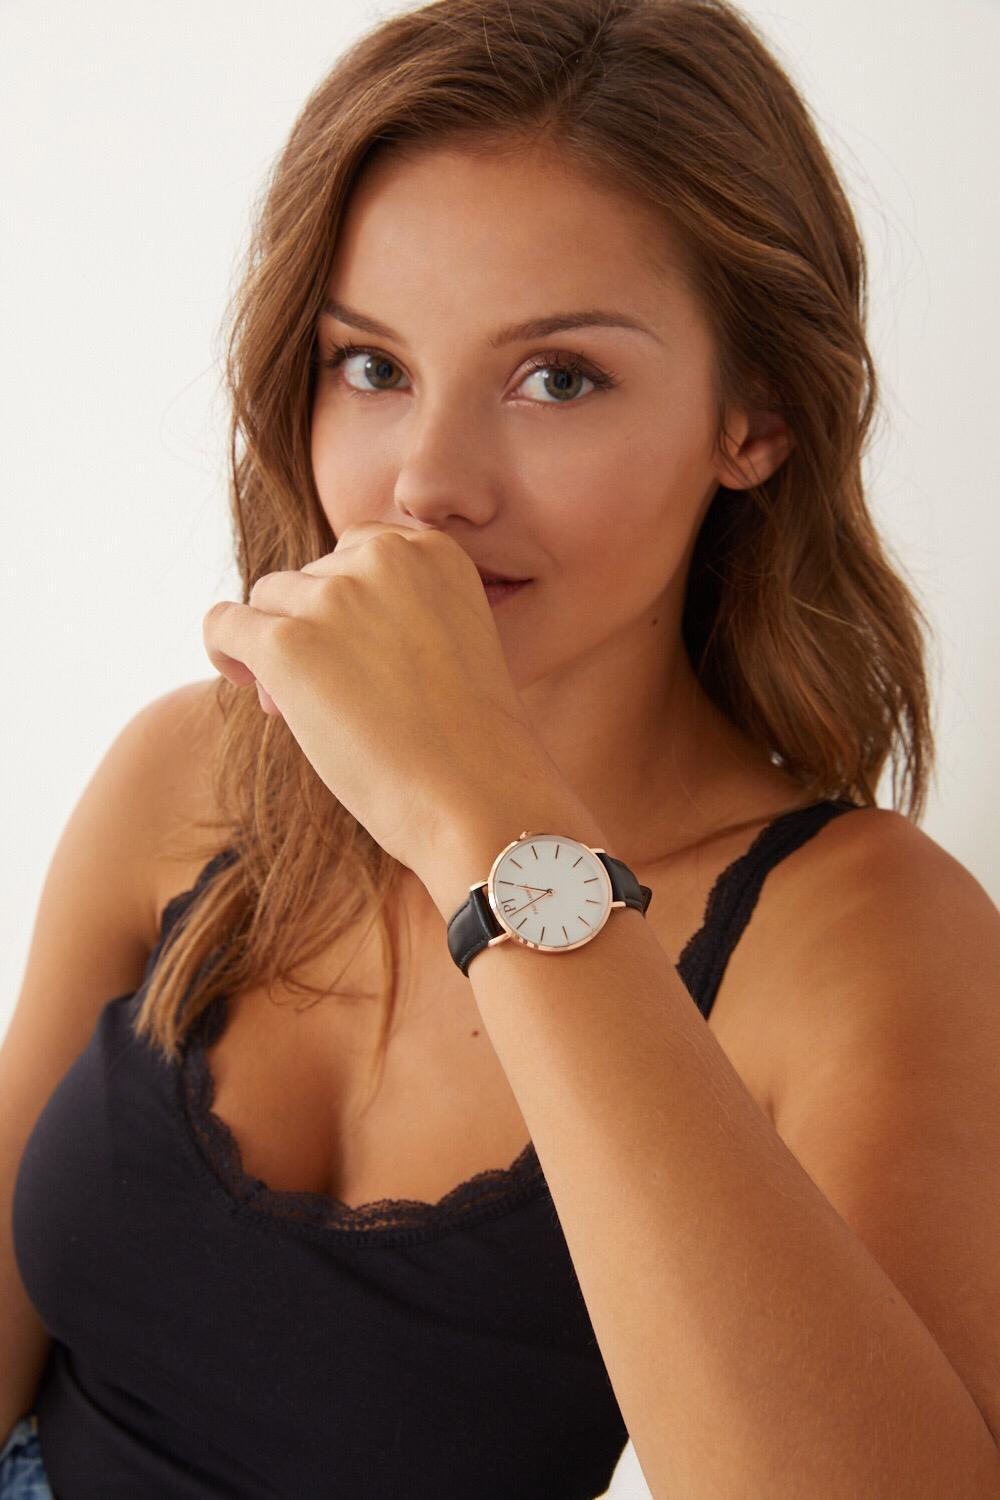 Women watches, leather watch for women, affordable watches, paul jarrel watches, paul watches, montre cuir femme, montre pas chère, relojes mujer barato